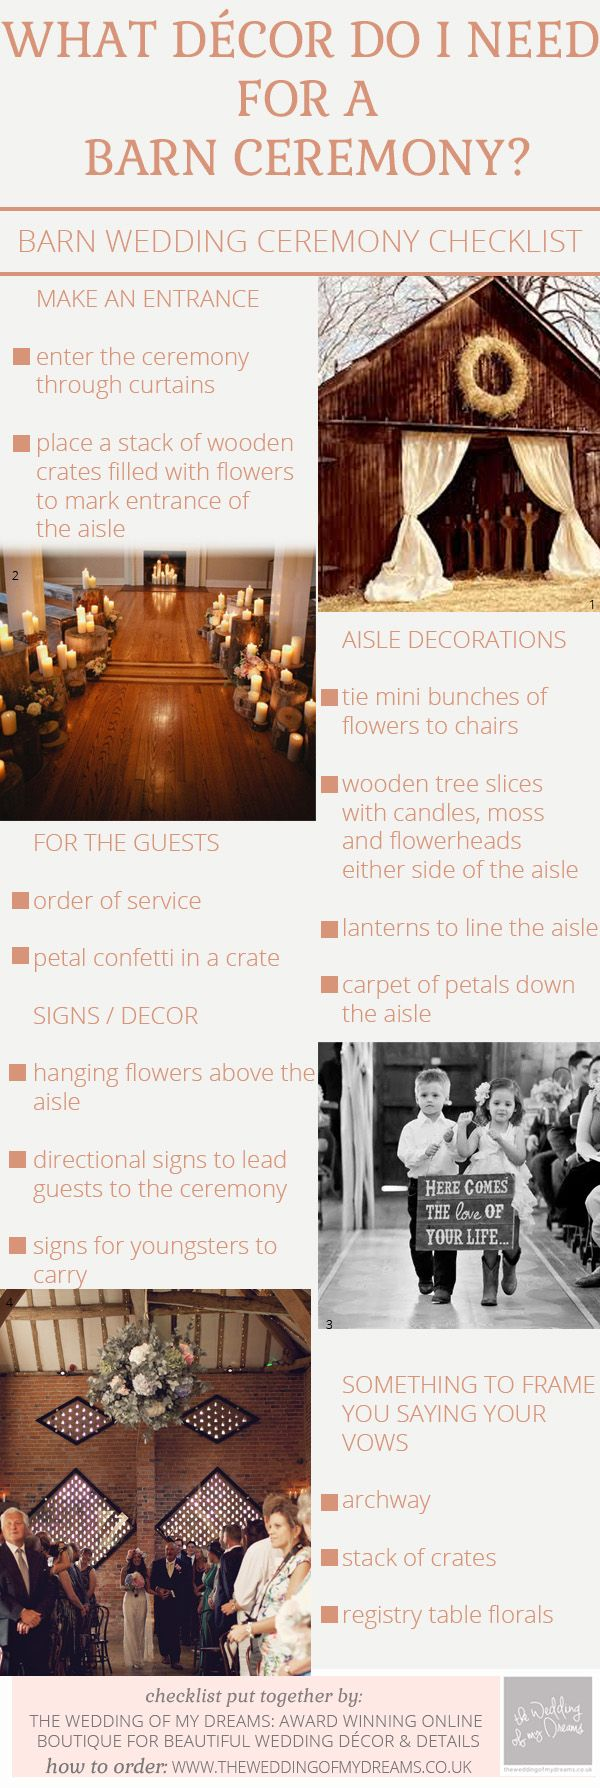 What Decorations Do I Need For A Barn Wedding Ceremony – Checklist / http://www.deerpearlflowers.com/rustic-beach-outdoor-wedding-checklist/